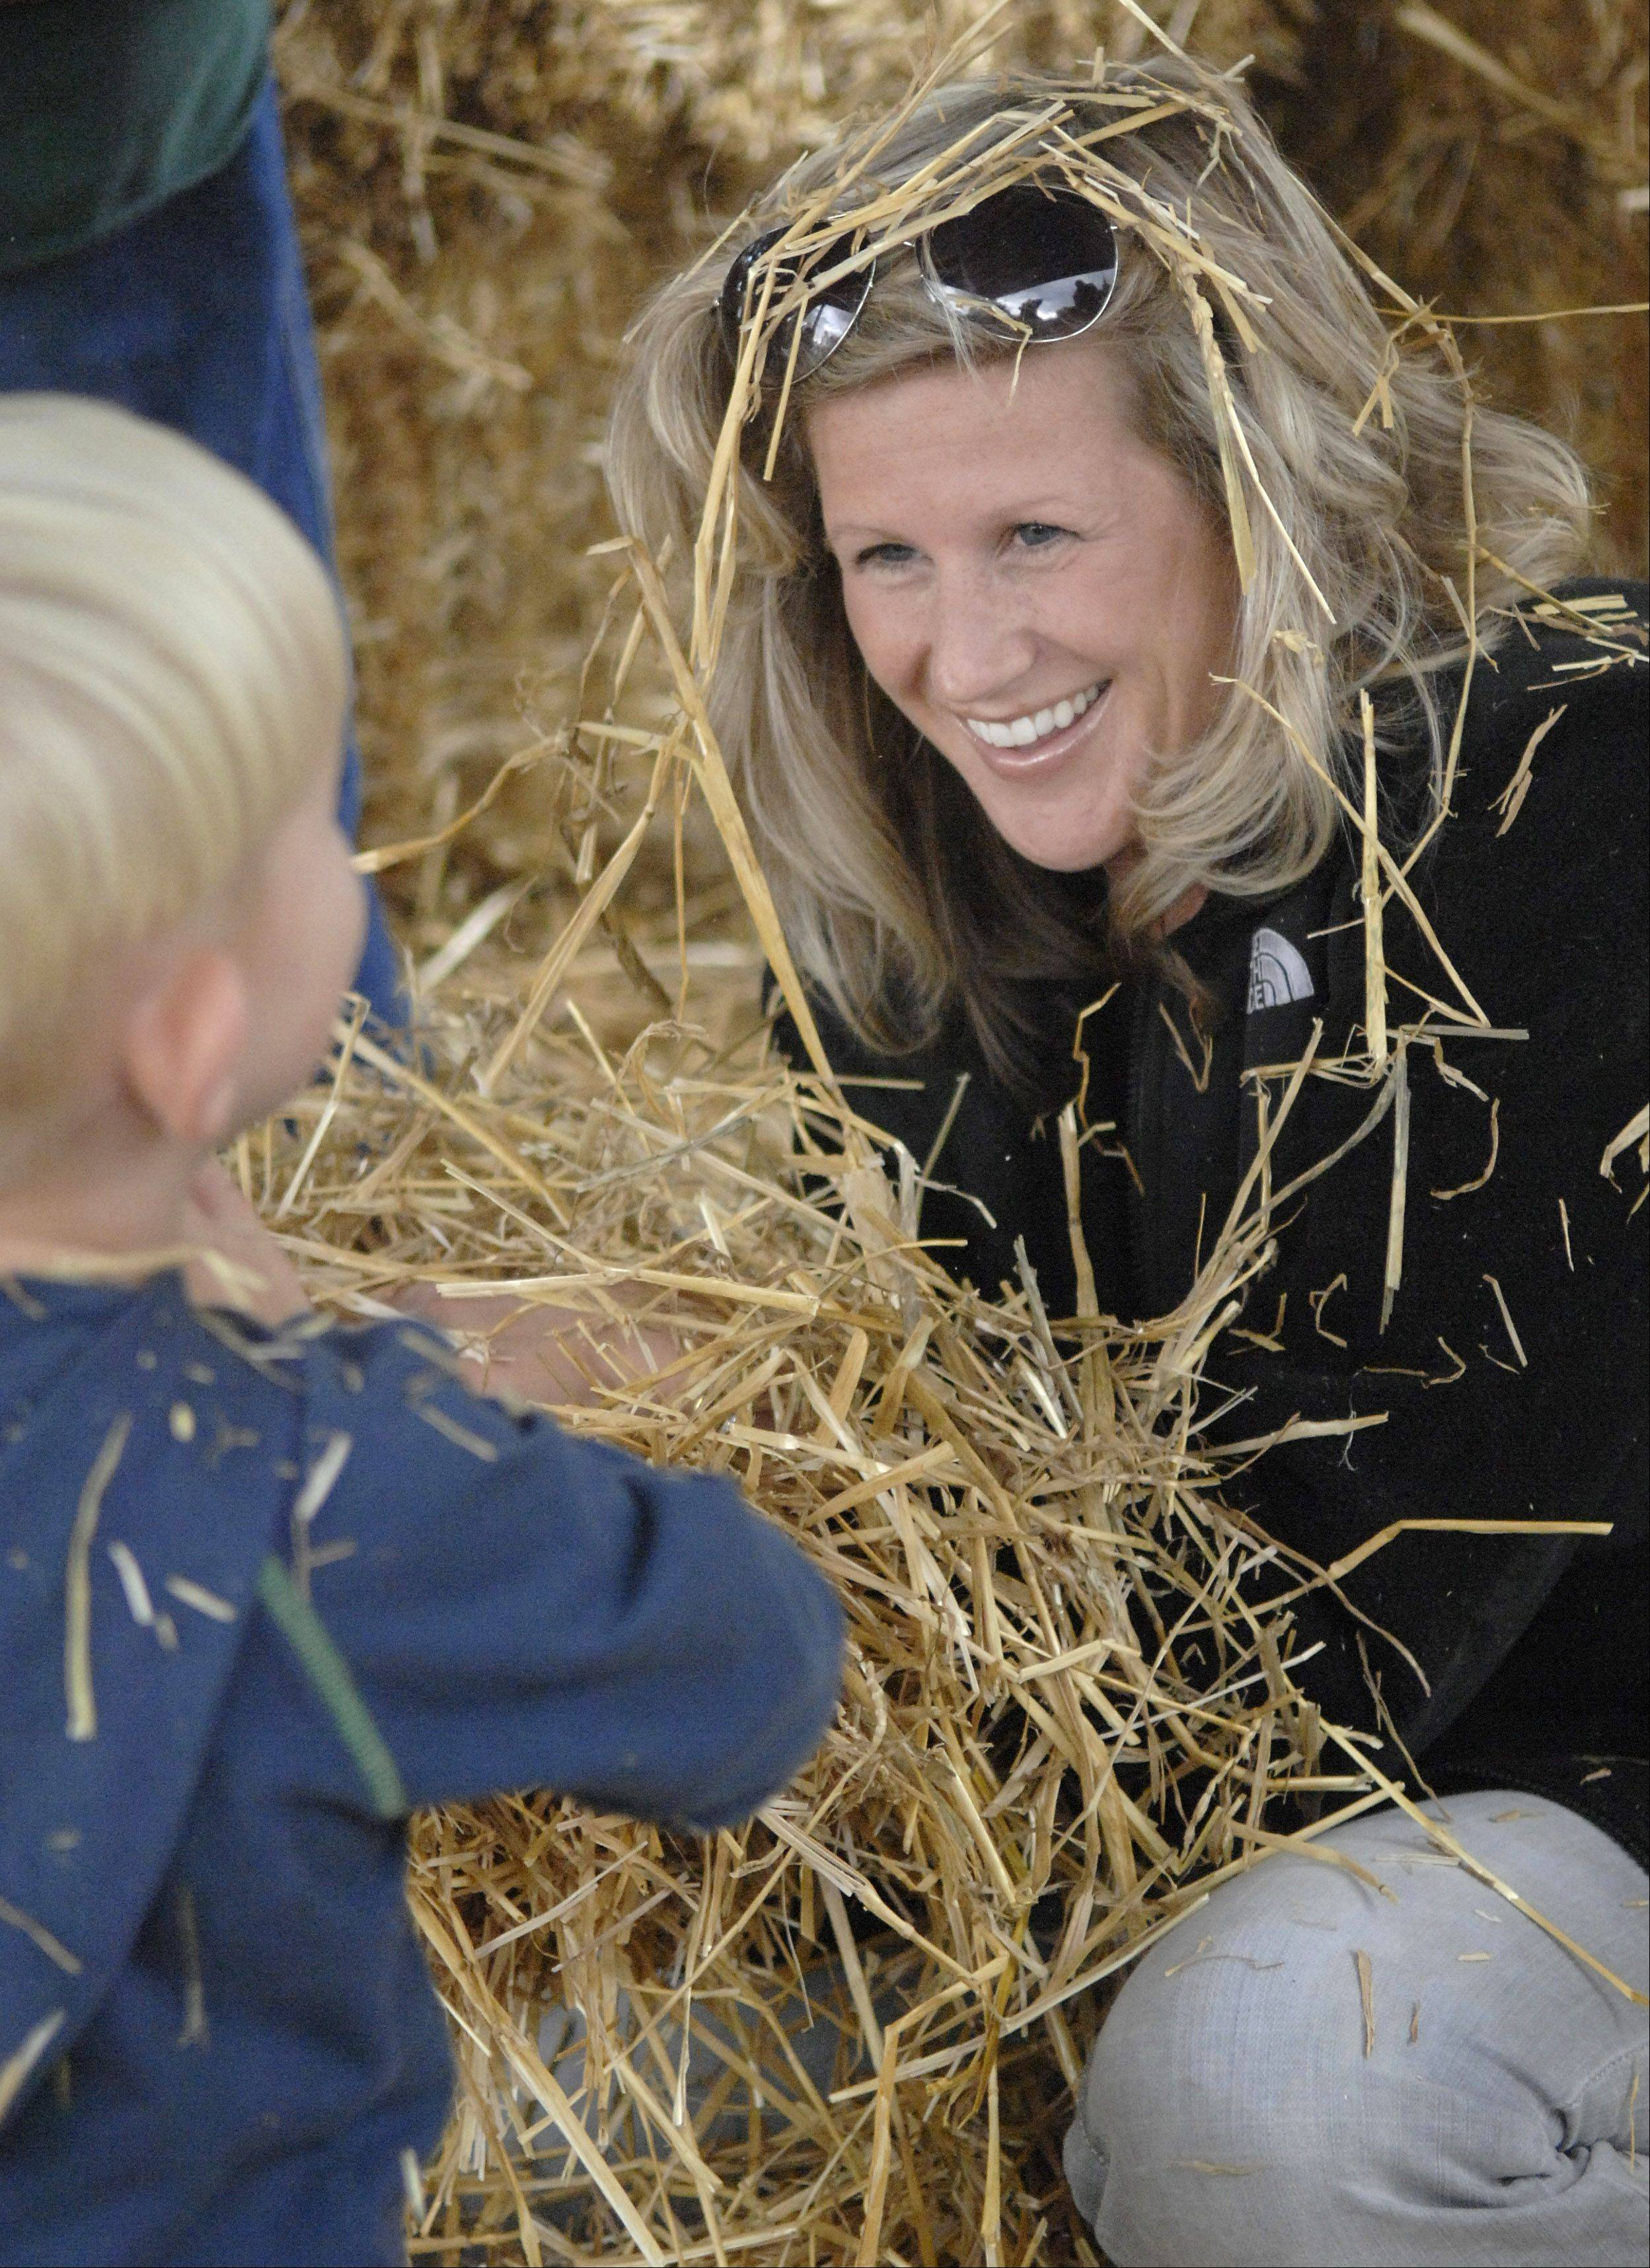 Heather Schroeder and son, Matthew, 2, of Huntley have a straw fight while their scarecrow's finishing touches are put on by Matthew's dad, Brad, at a previous Huntley Fall Fest. The family assembled their own scarecrow at the festival. This year's festival begins Friday and runs through Sunday.